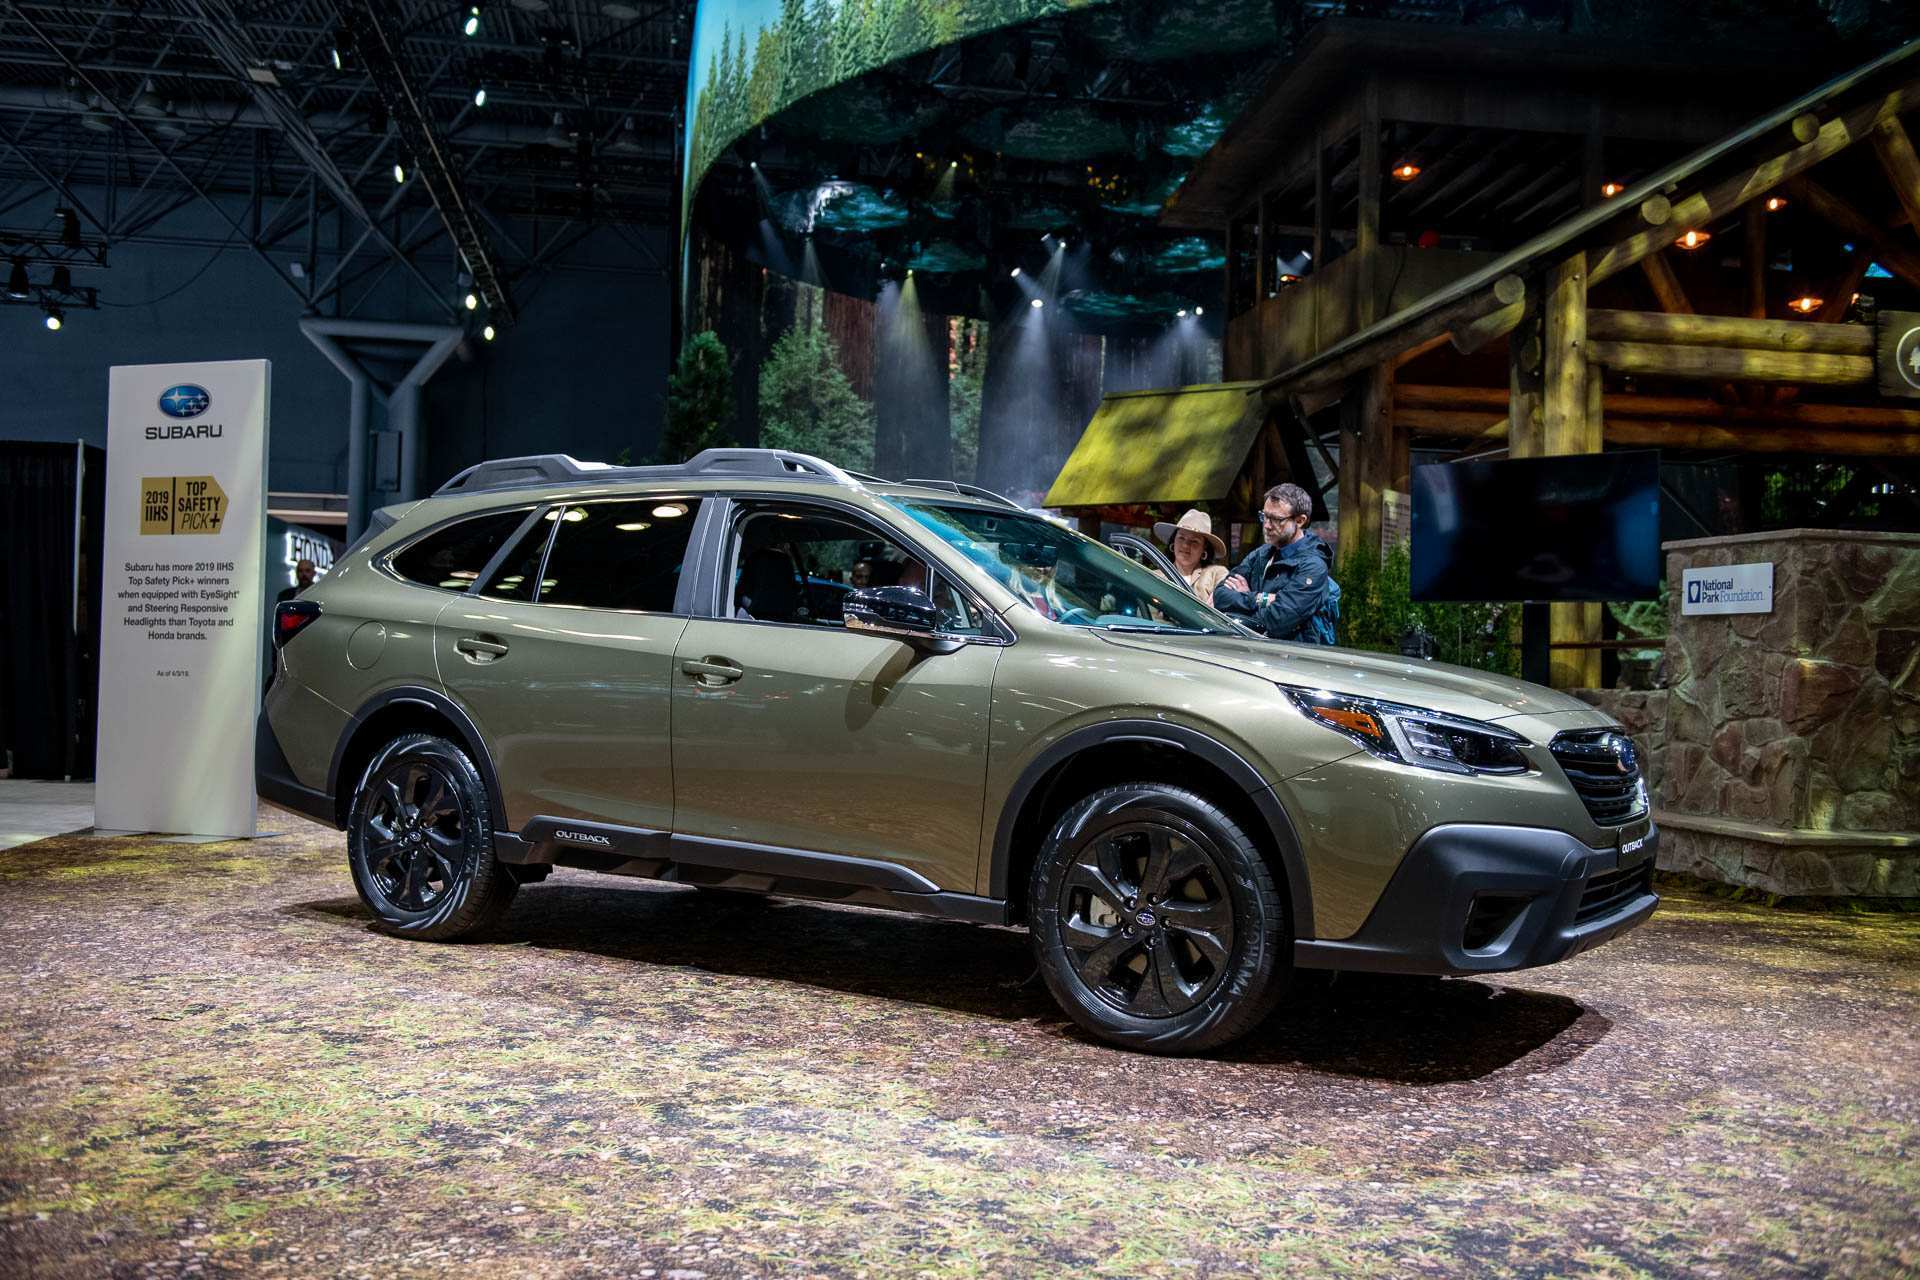 37 New 2020 Subaru Outback Turbo Hybrid Picture